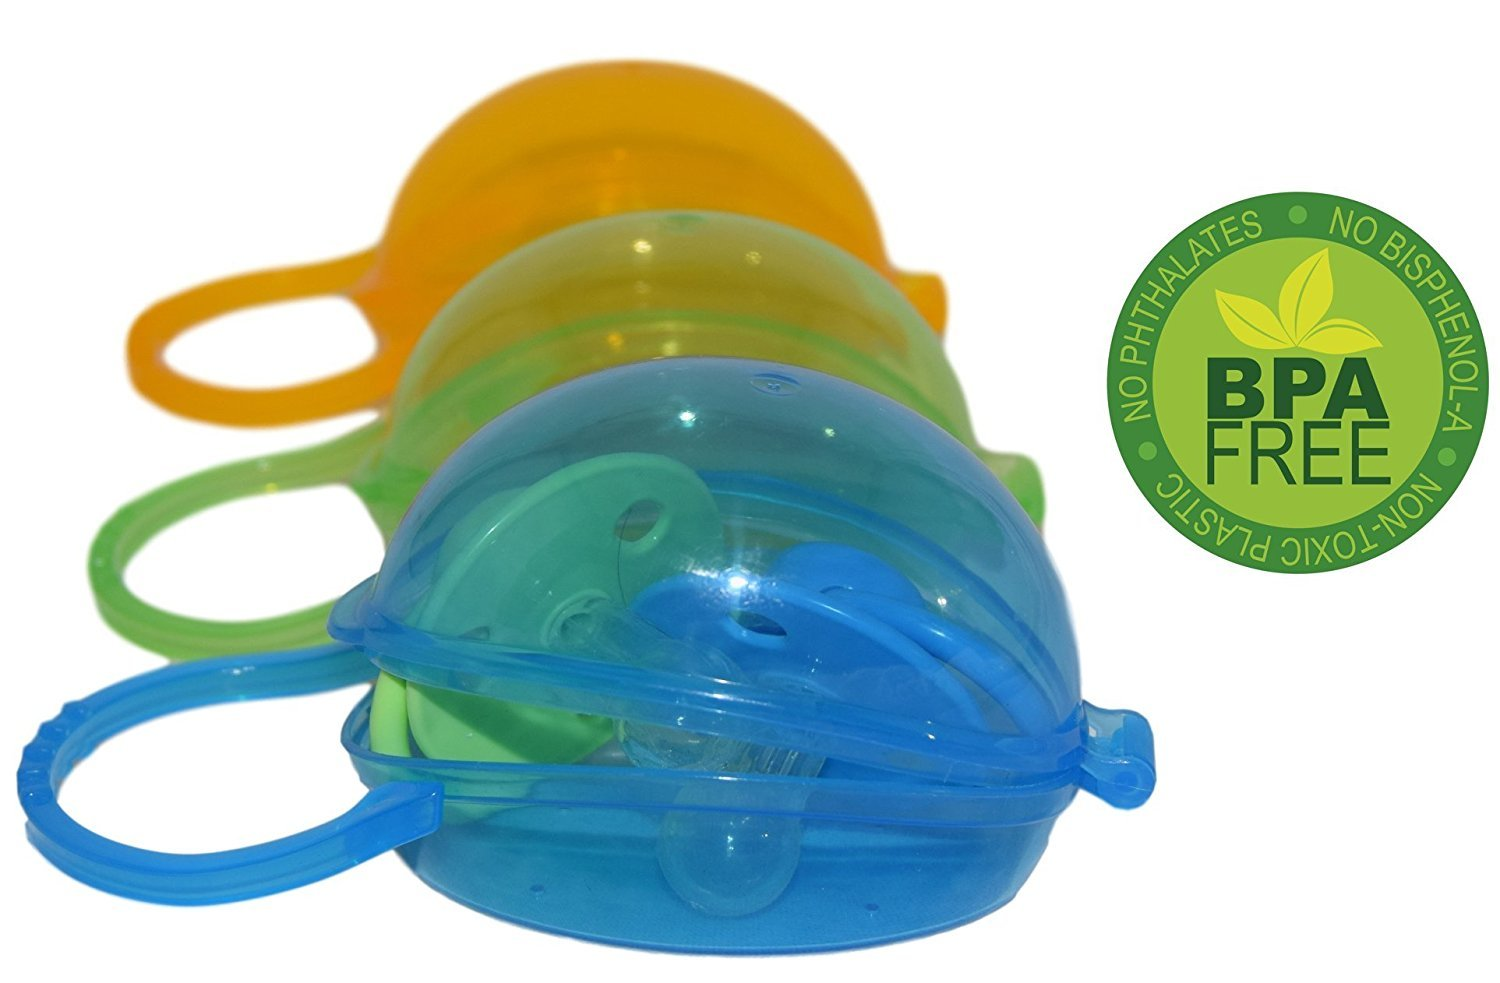 Flash Sale | Akeekah Dummy Case & Nipple Shield Case 3 Pack | BPA Free Soother Pacifier Holder with Free Mesh Sack | Blue, Green & Orange